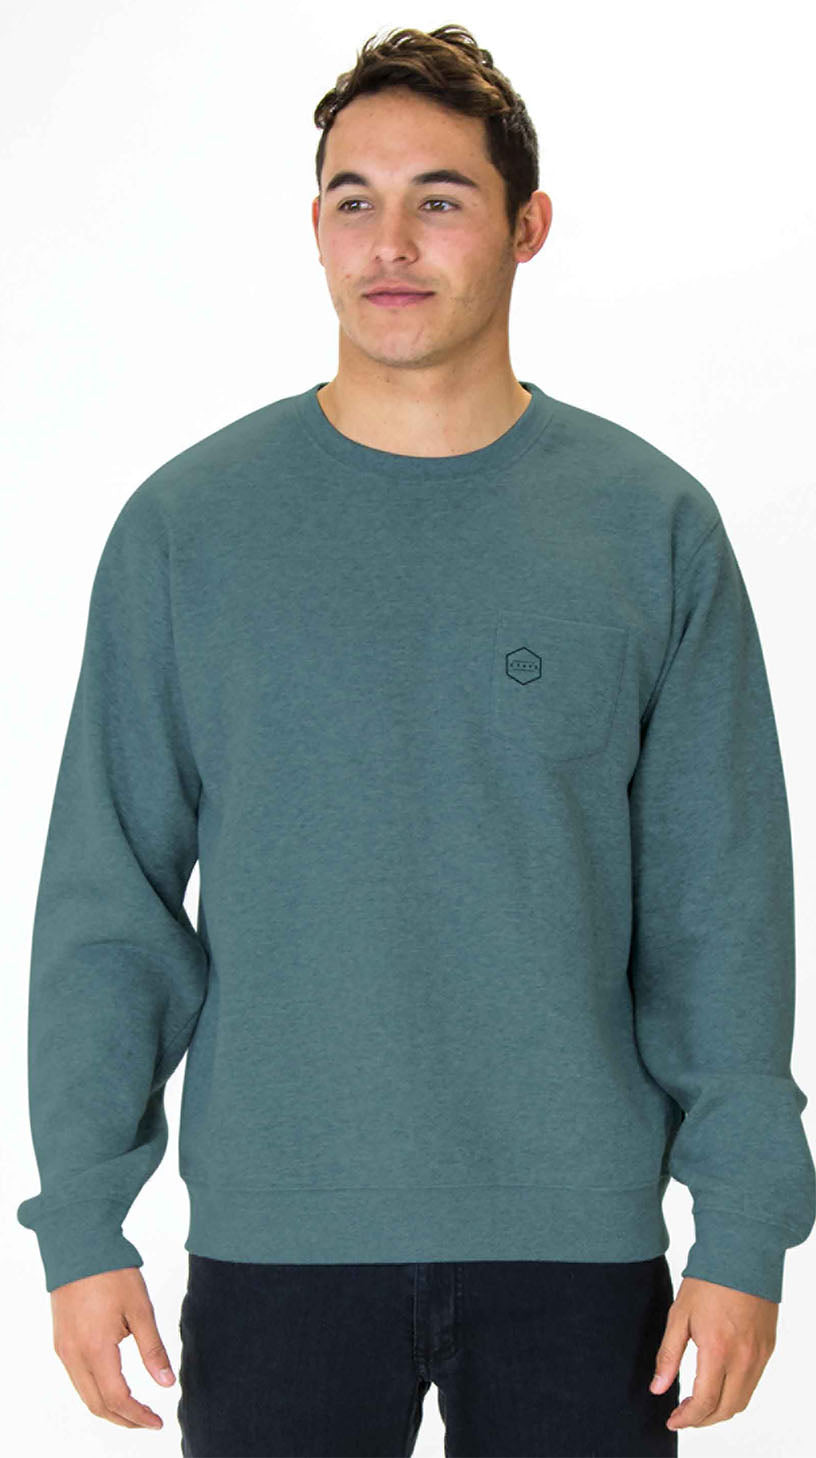 TRACKS Crew Neck Sweatshirt by Carve